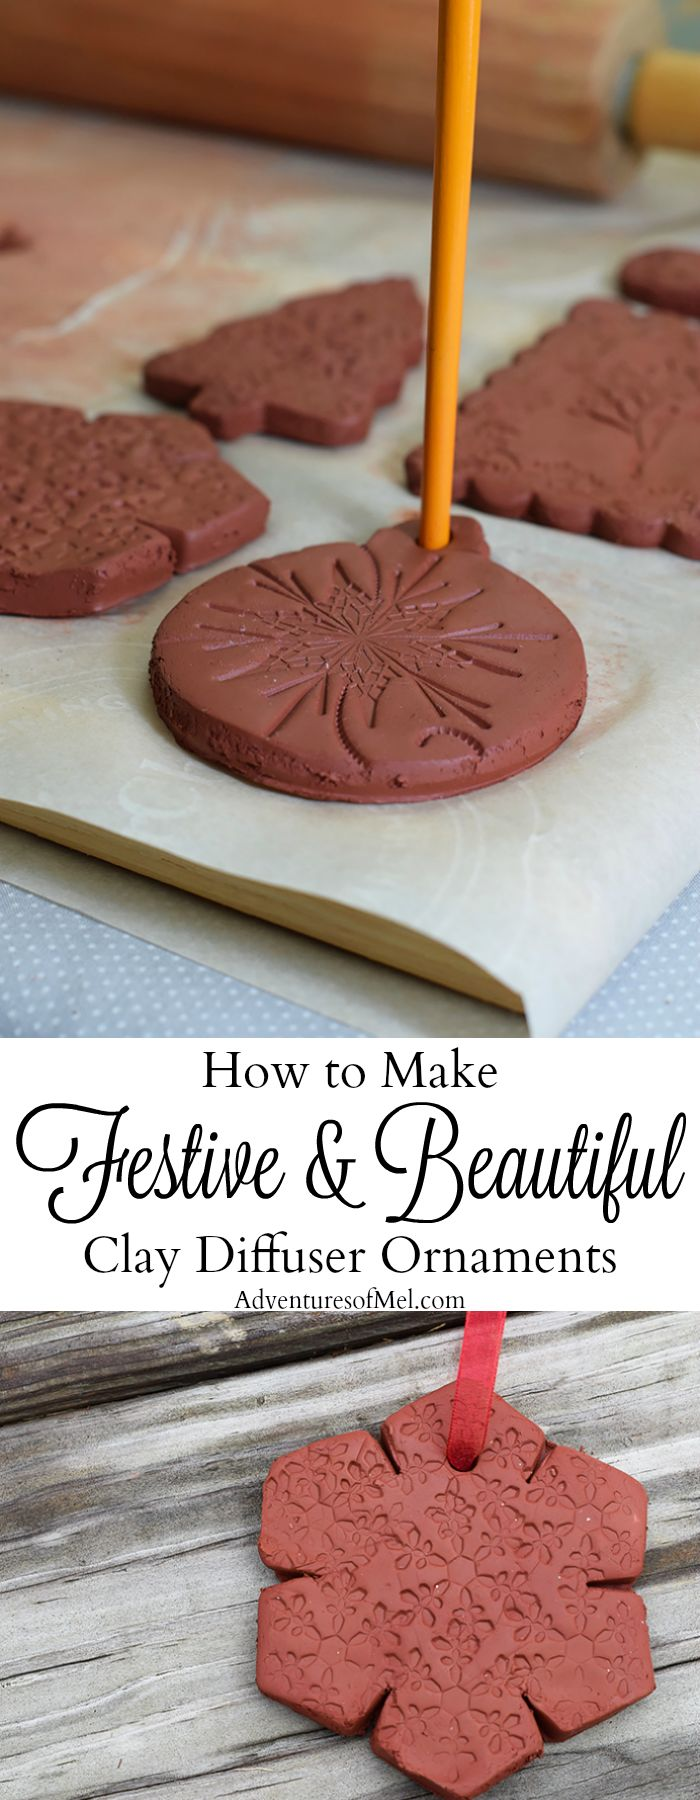 How To Make Festive And Beautiful Clay Diffuser Ornaments Christmas Cookie